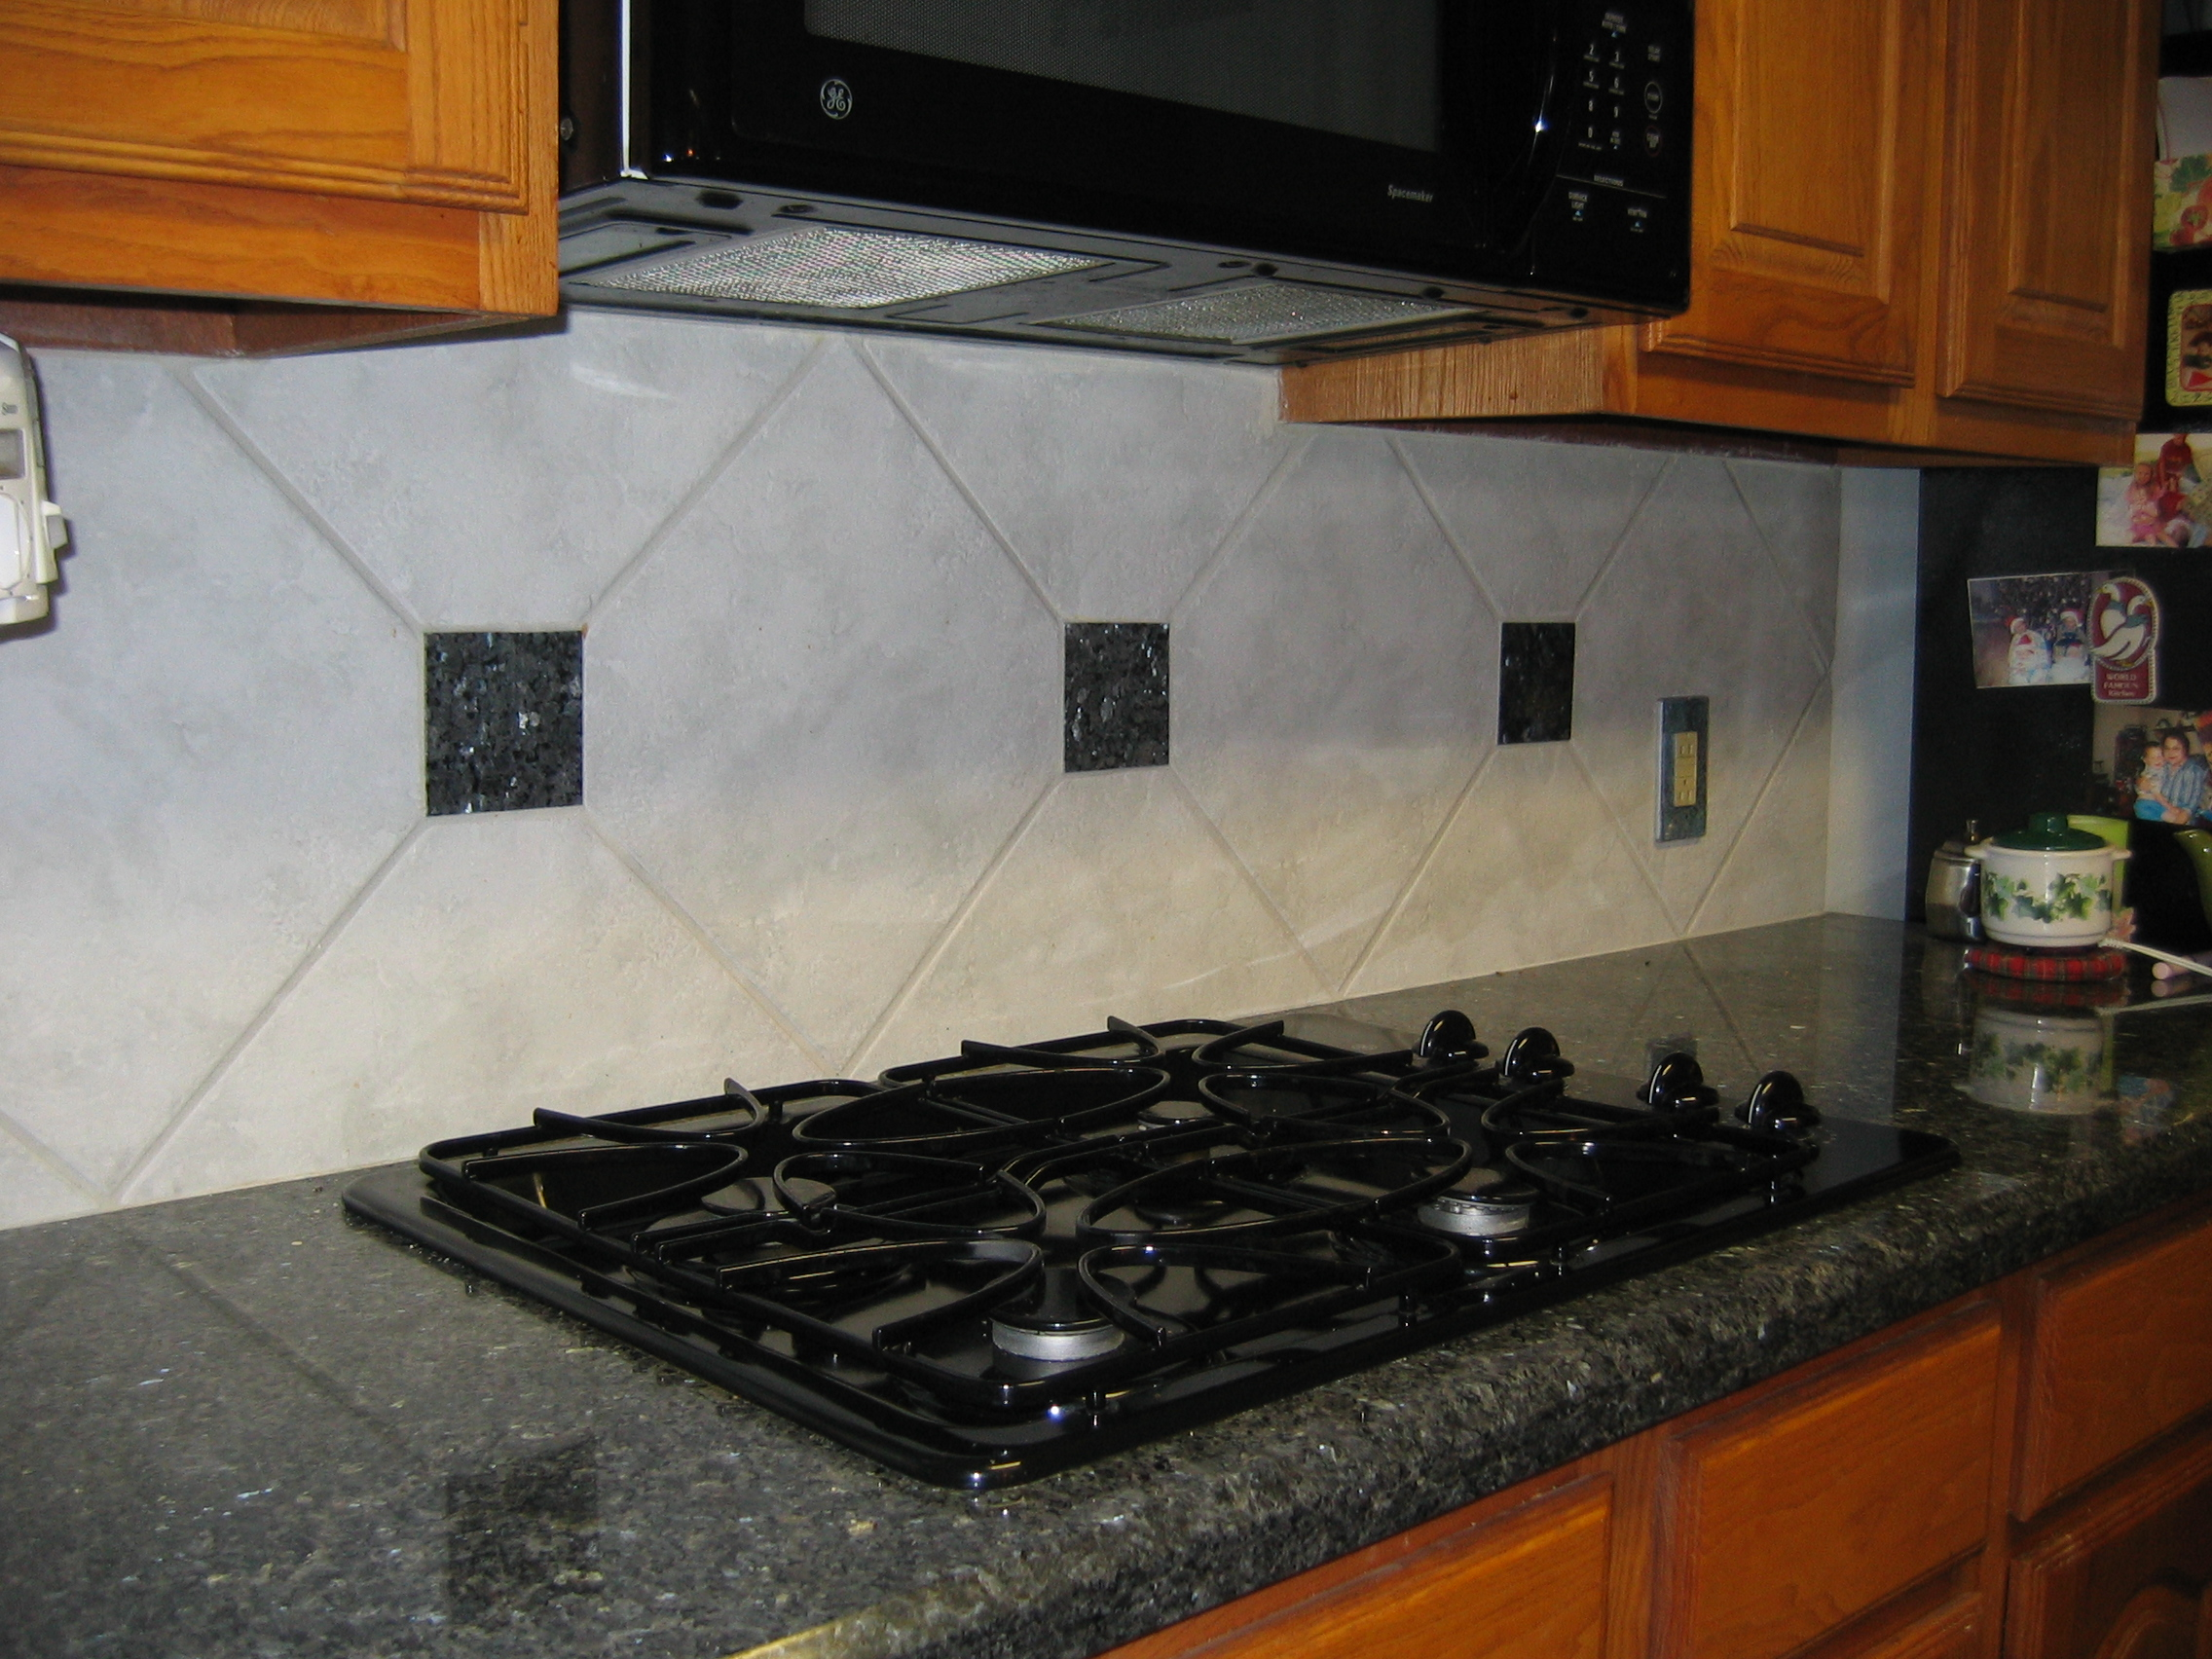 Blue Granite Countertops Wl Cm Stone Works Granite Countertops Chicago Countertop Kitchen